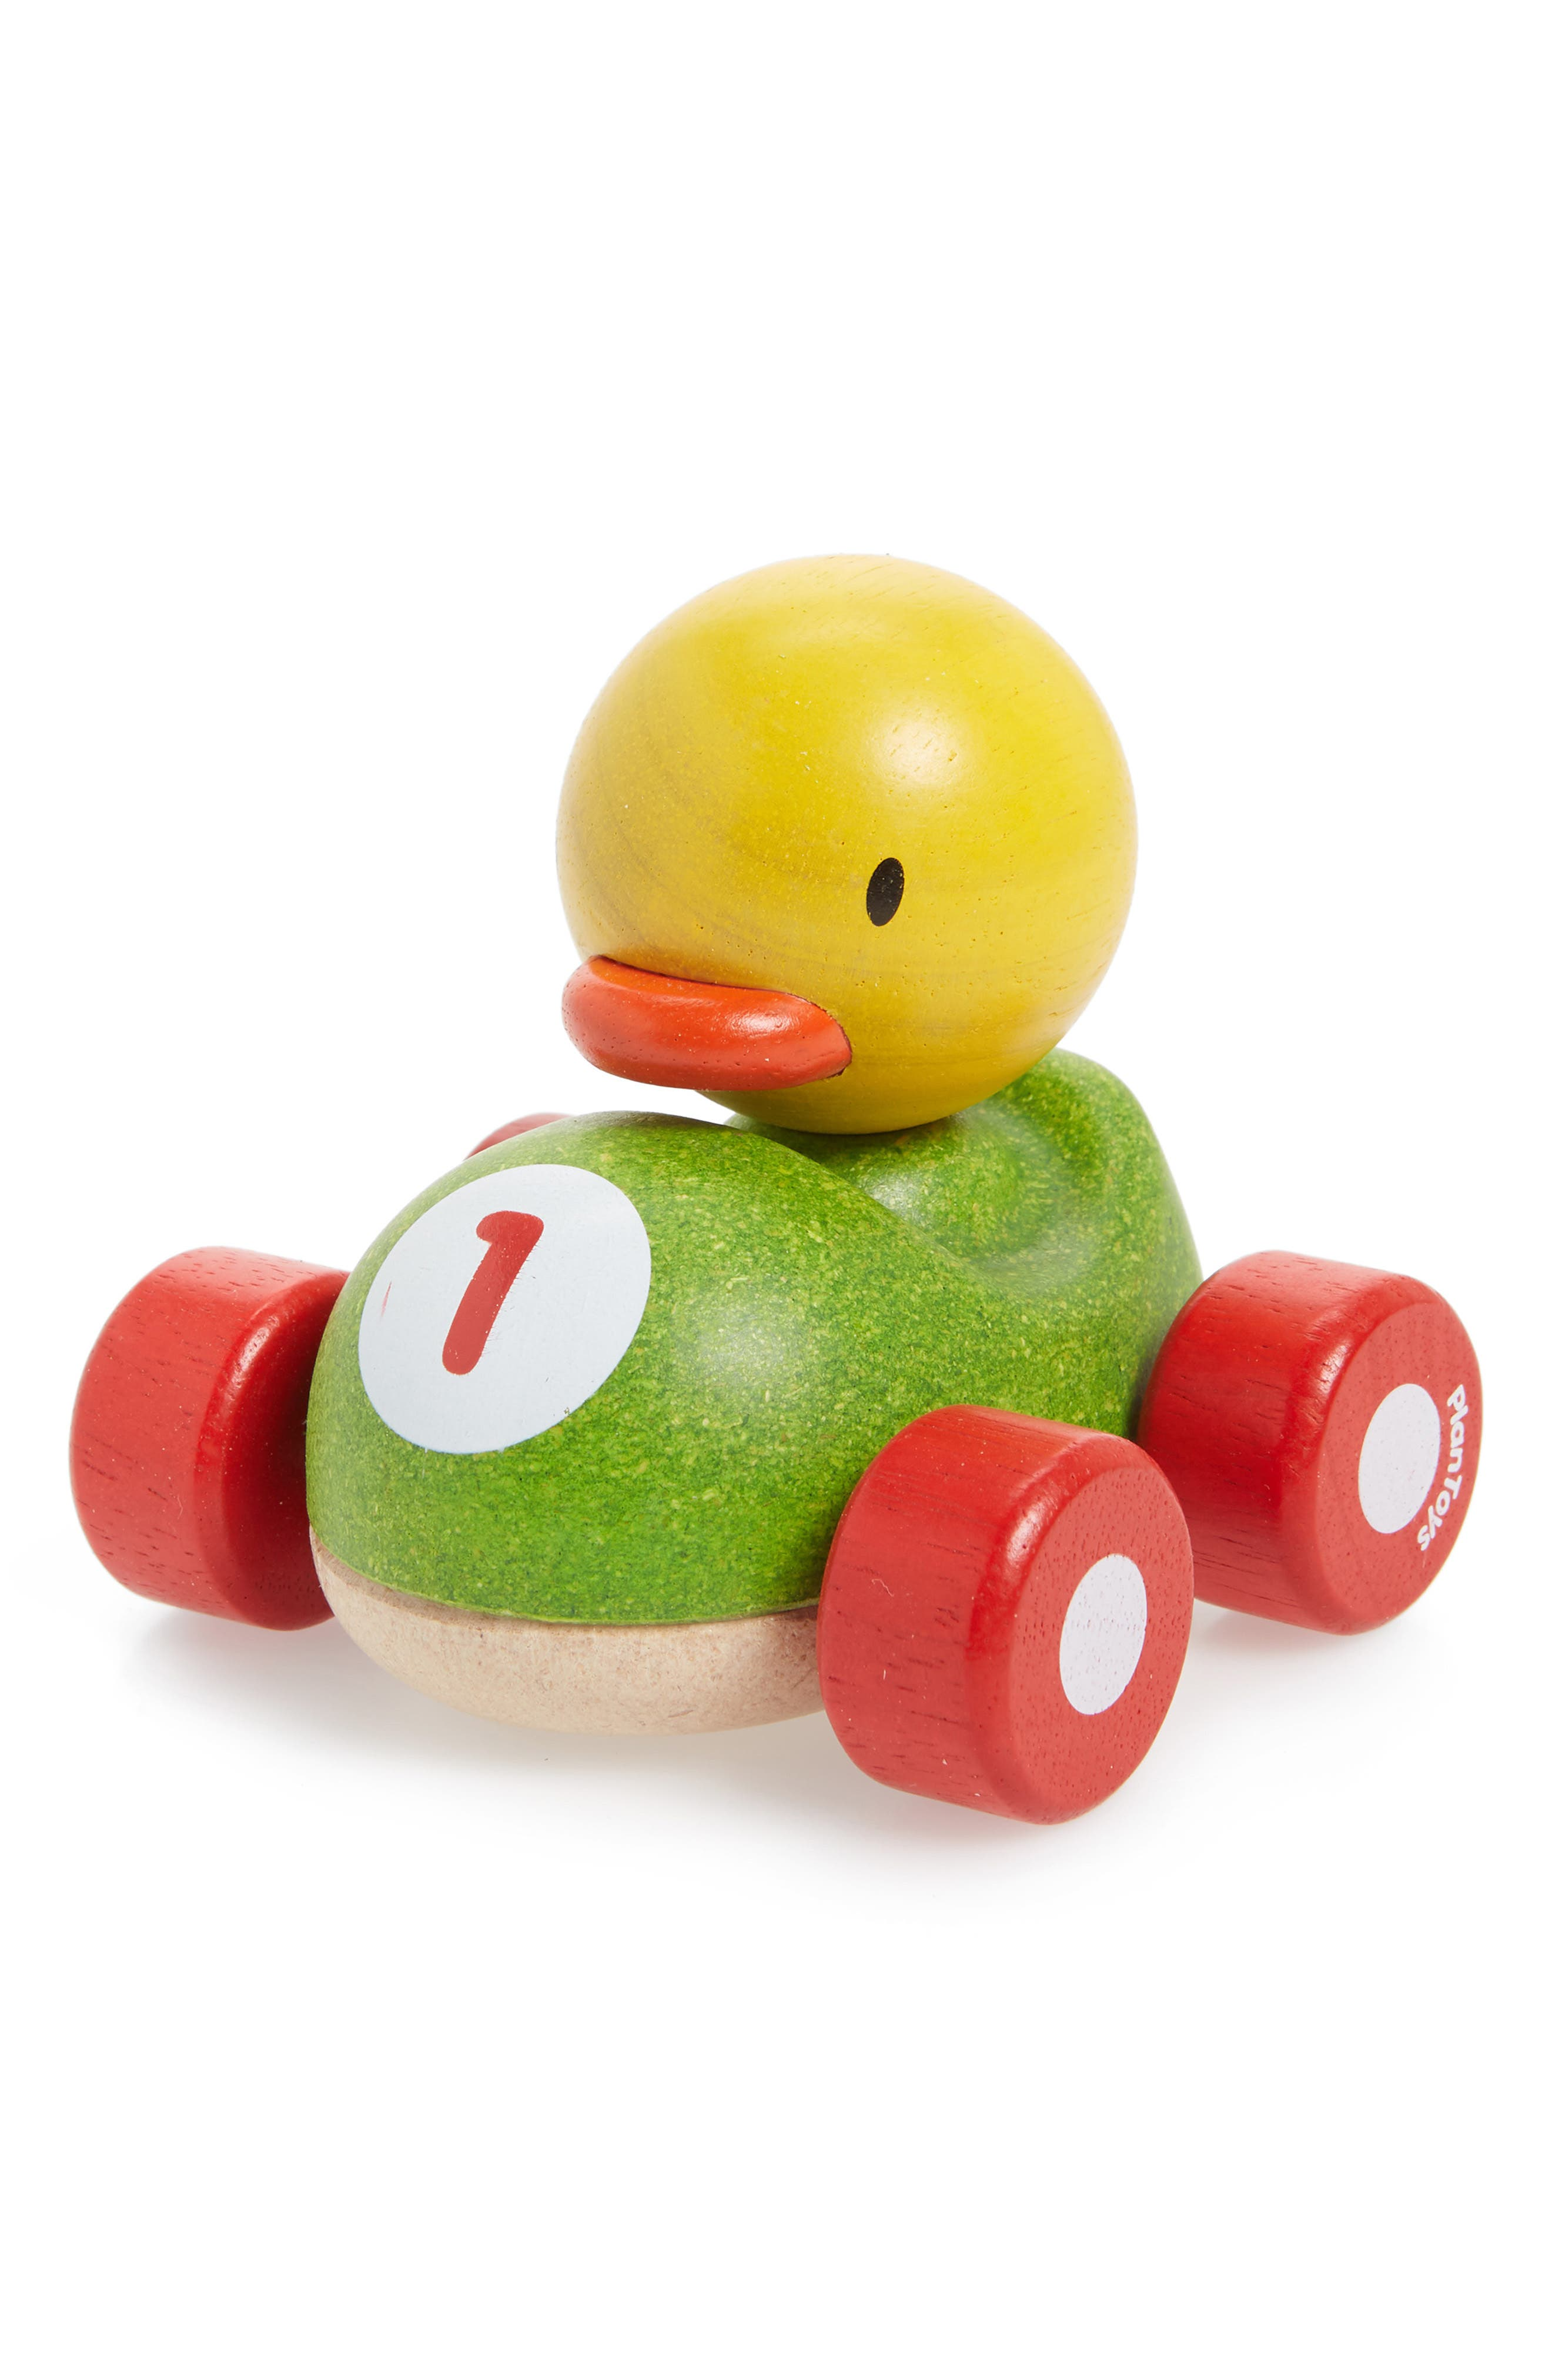 Plan Toys<sup>®</sup> Duck Racer Rolling Toy,                         Main,                         color, 300